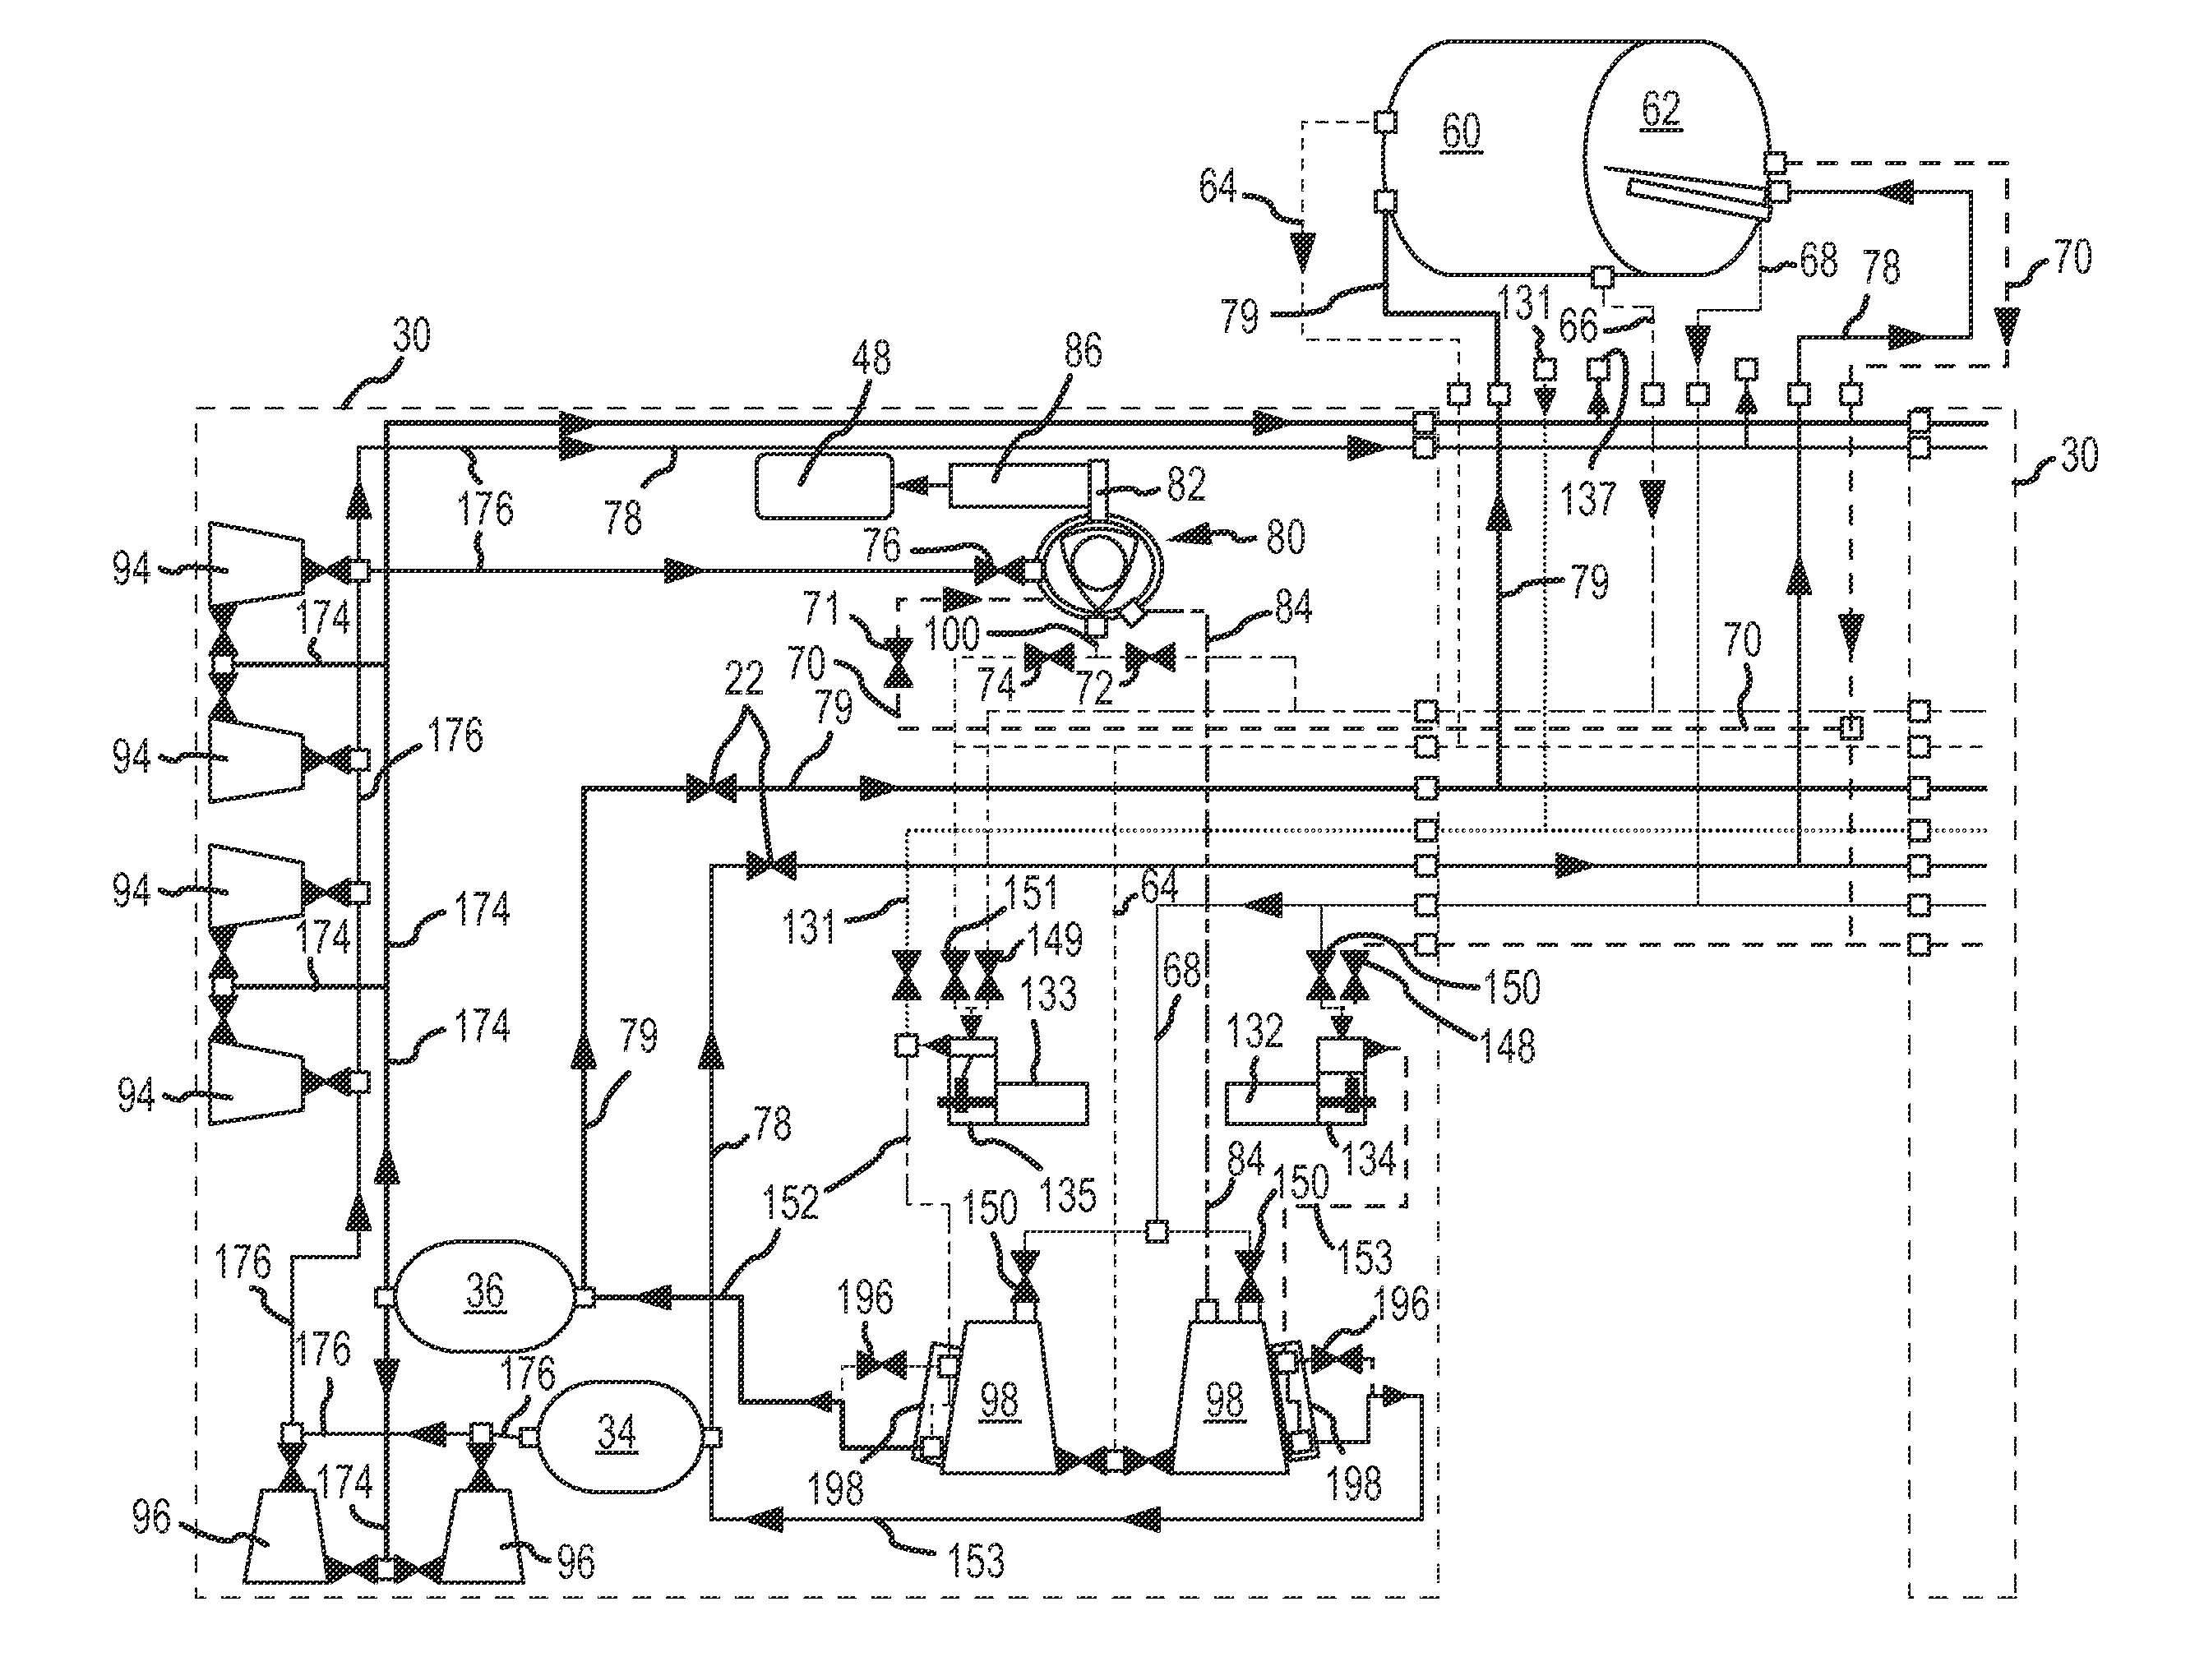 rcs actuator wiring diagram Collection-car Patent Us Integrated Vehicle Fluids Google Patents Patent Drawing Rcs Wiring Diagram Tbz48 Thermostat 12-l